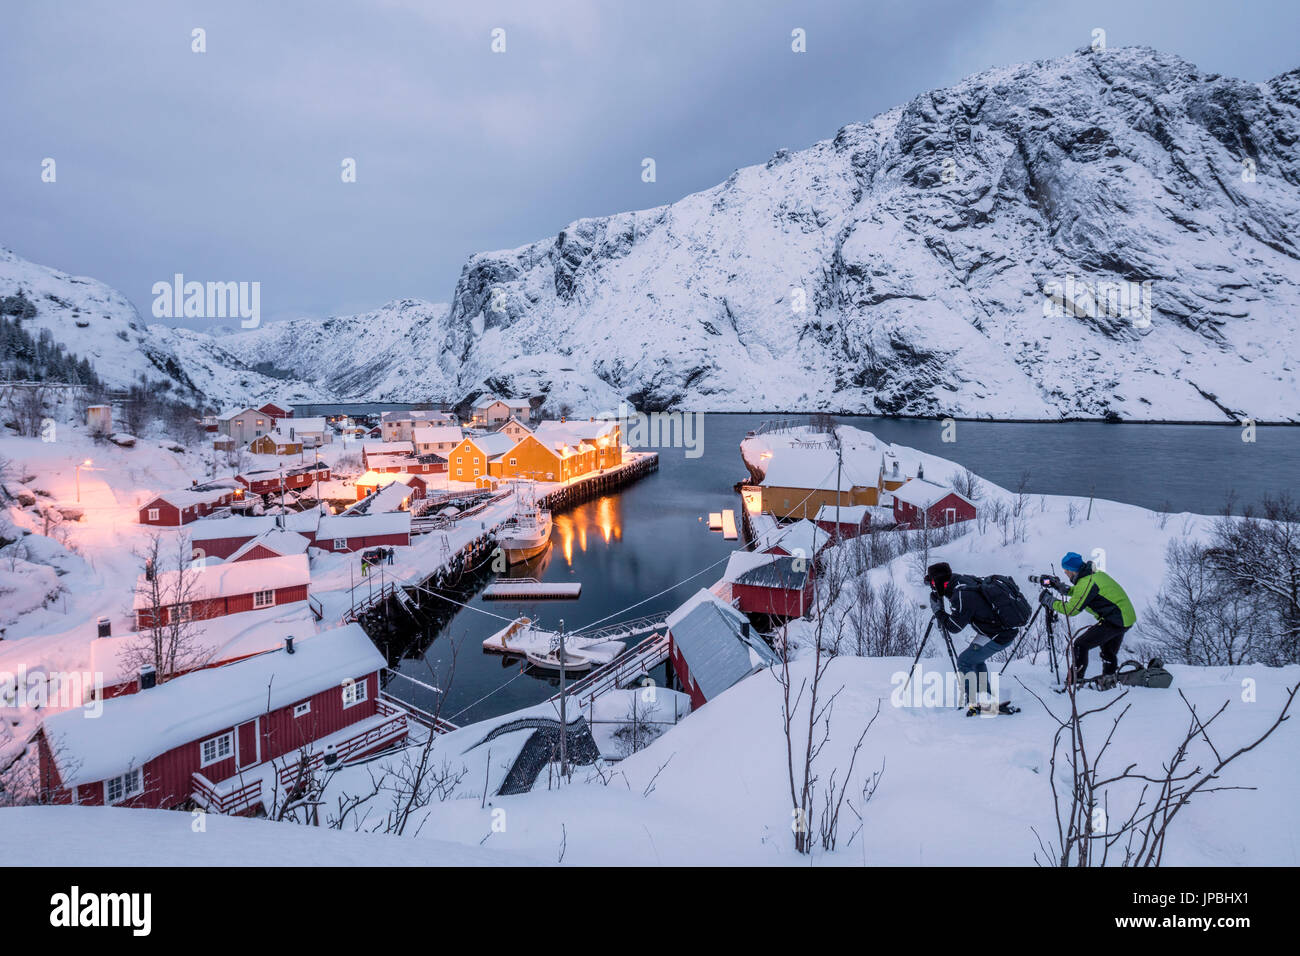 Photographers at dusk close to the fishing village covered with snow Nusfjord Nordland Lofoten Islands Northern Norway Europe - Stock Image